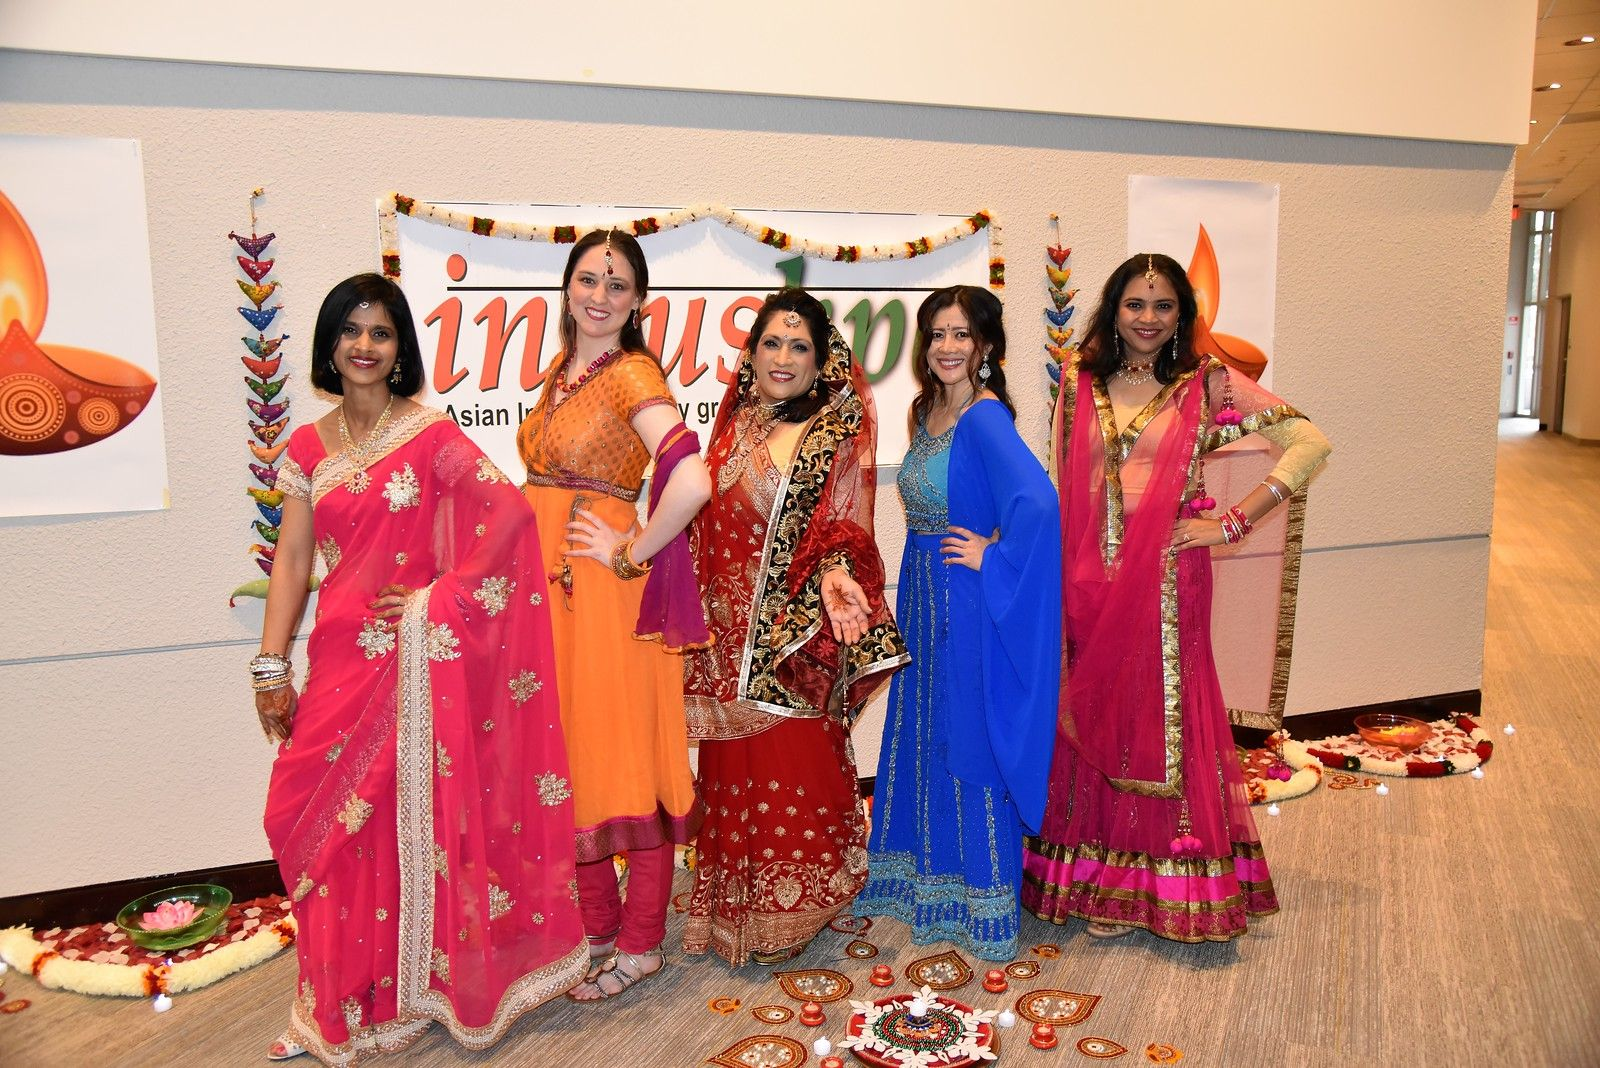 Participants in the Fashion Show not only dressed in beautiful traditional Indian clothing  - they even had a Henna ceremony the night before so our employees could understand this part of the Indian culture